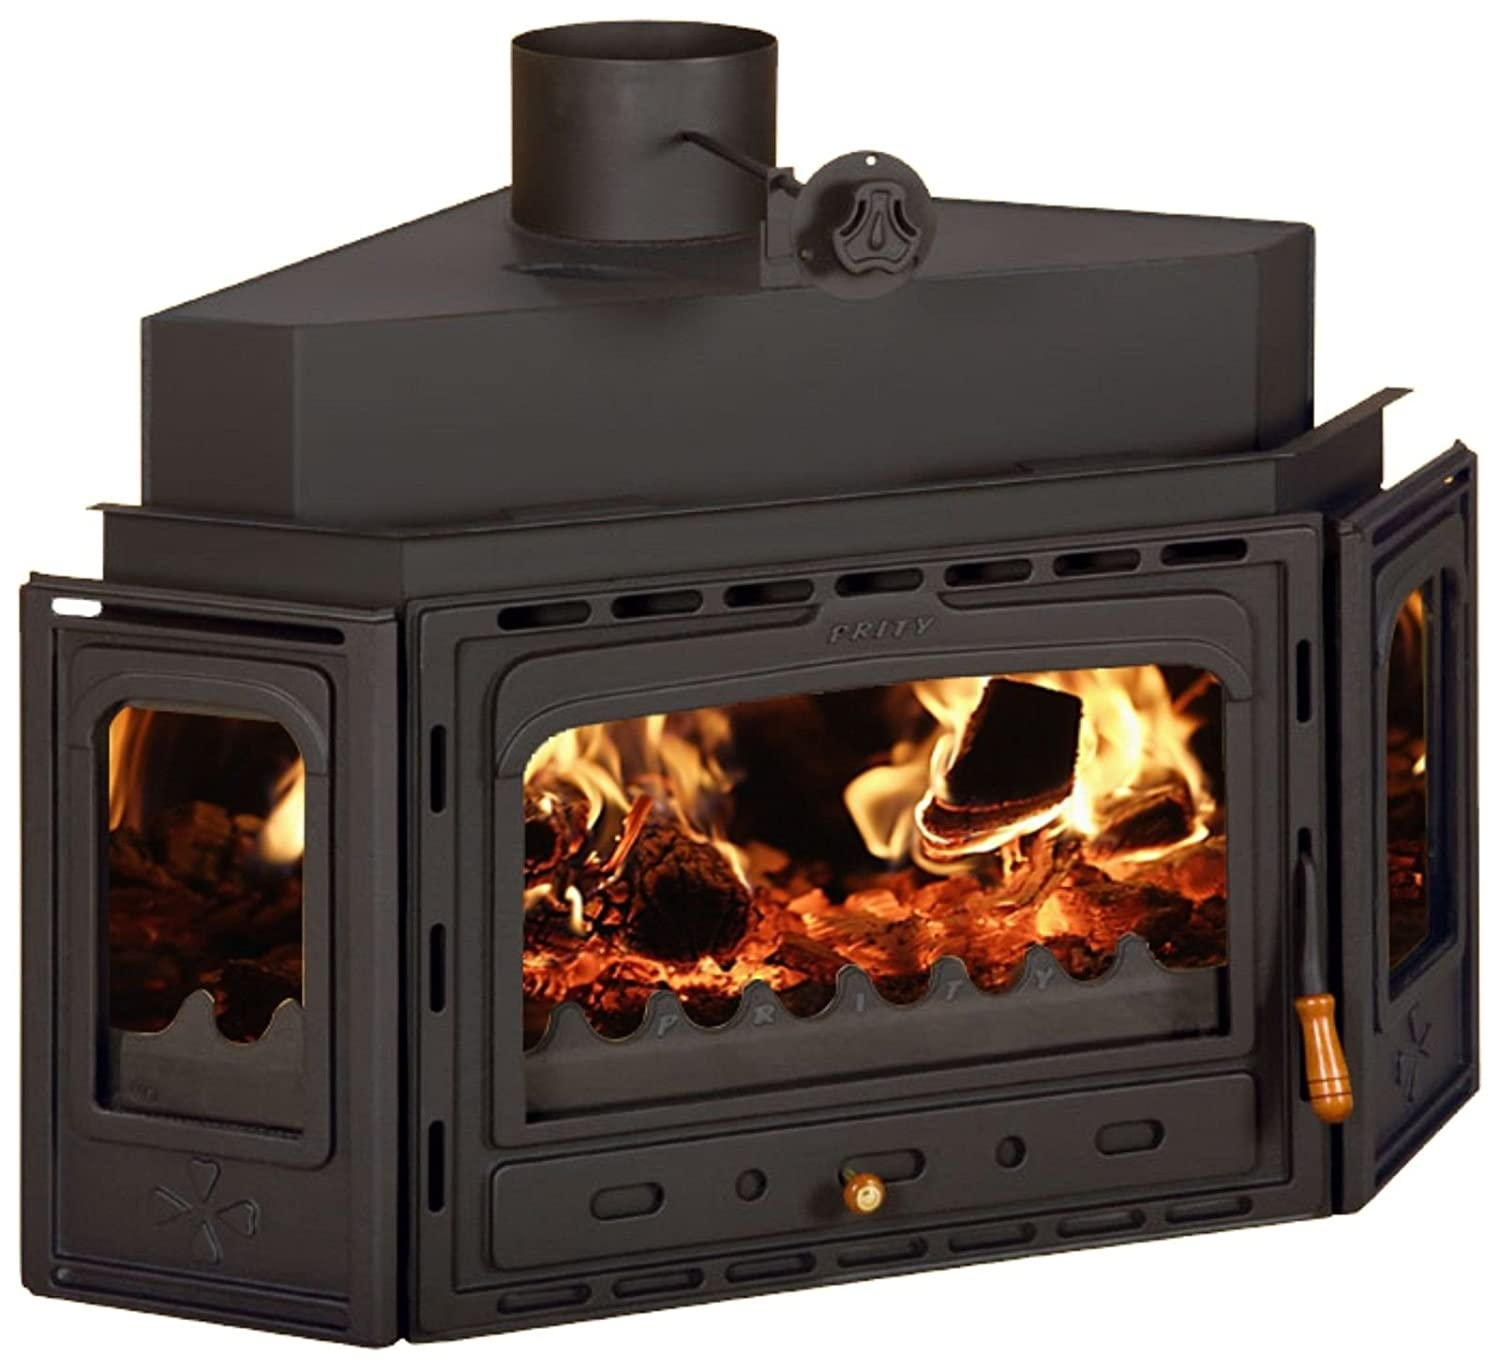 Inset Wood Burning Fireplace Insert Multi Fuel Built In Cast Iron